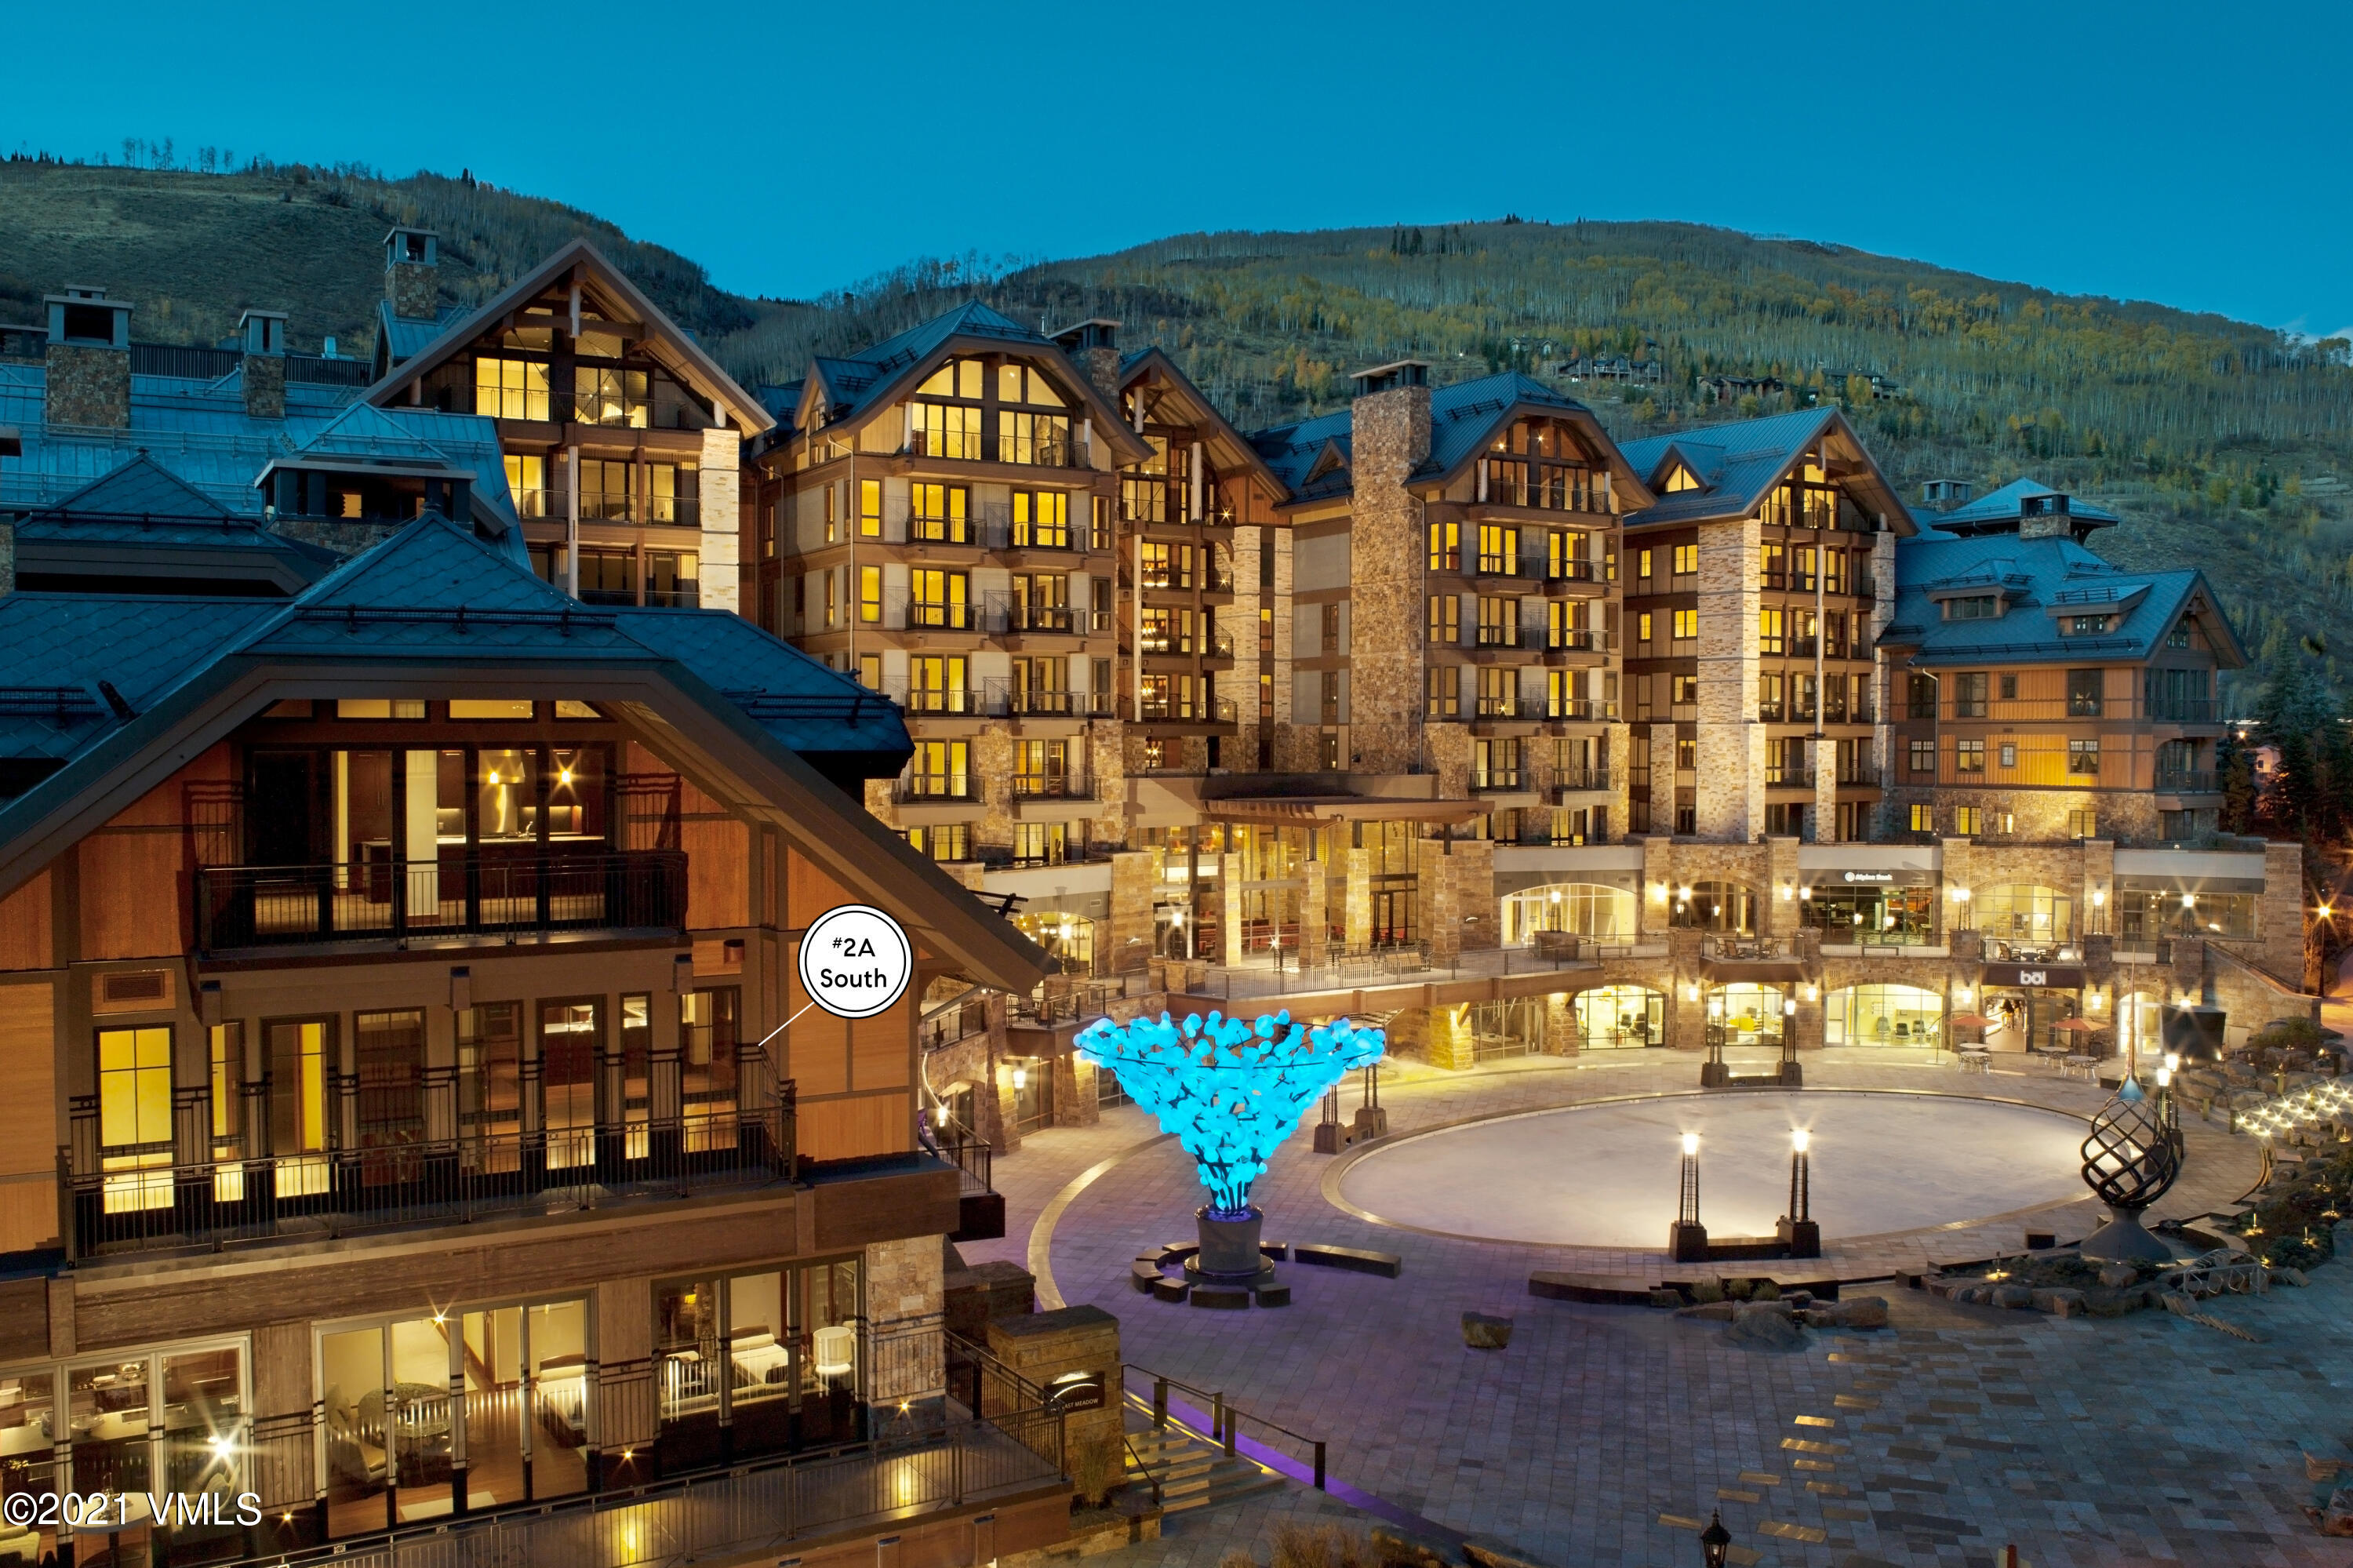 Enjoy beautiful south-facing mountain and city views from the oversized terrace overlooking Vail Village.  This 3 Bedroom, 4 Bath luxury residence is move-in ready and features some of the best amenities anywhere in Vail.  The Solaris features an indoor heated swimming pool and fitness center, world-class dining at Matsuhisa, ski valet and storage at the base of the Mountain and 24-Hour concierge service.